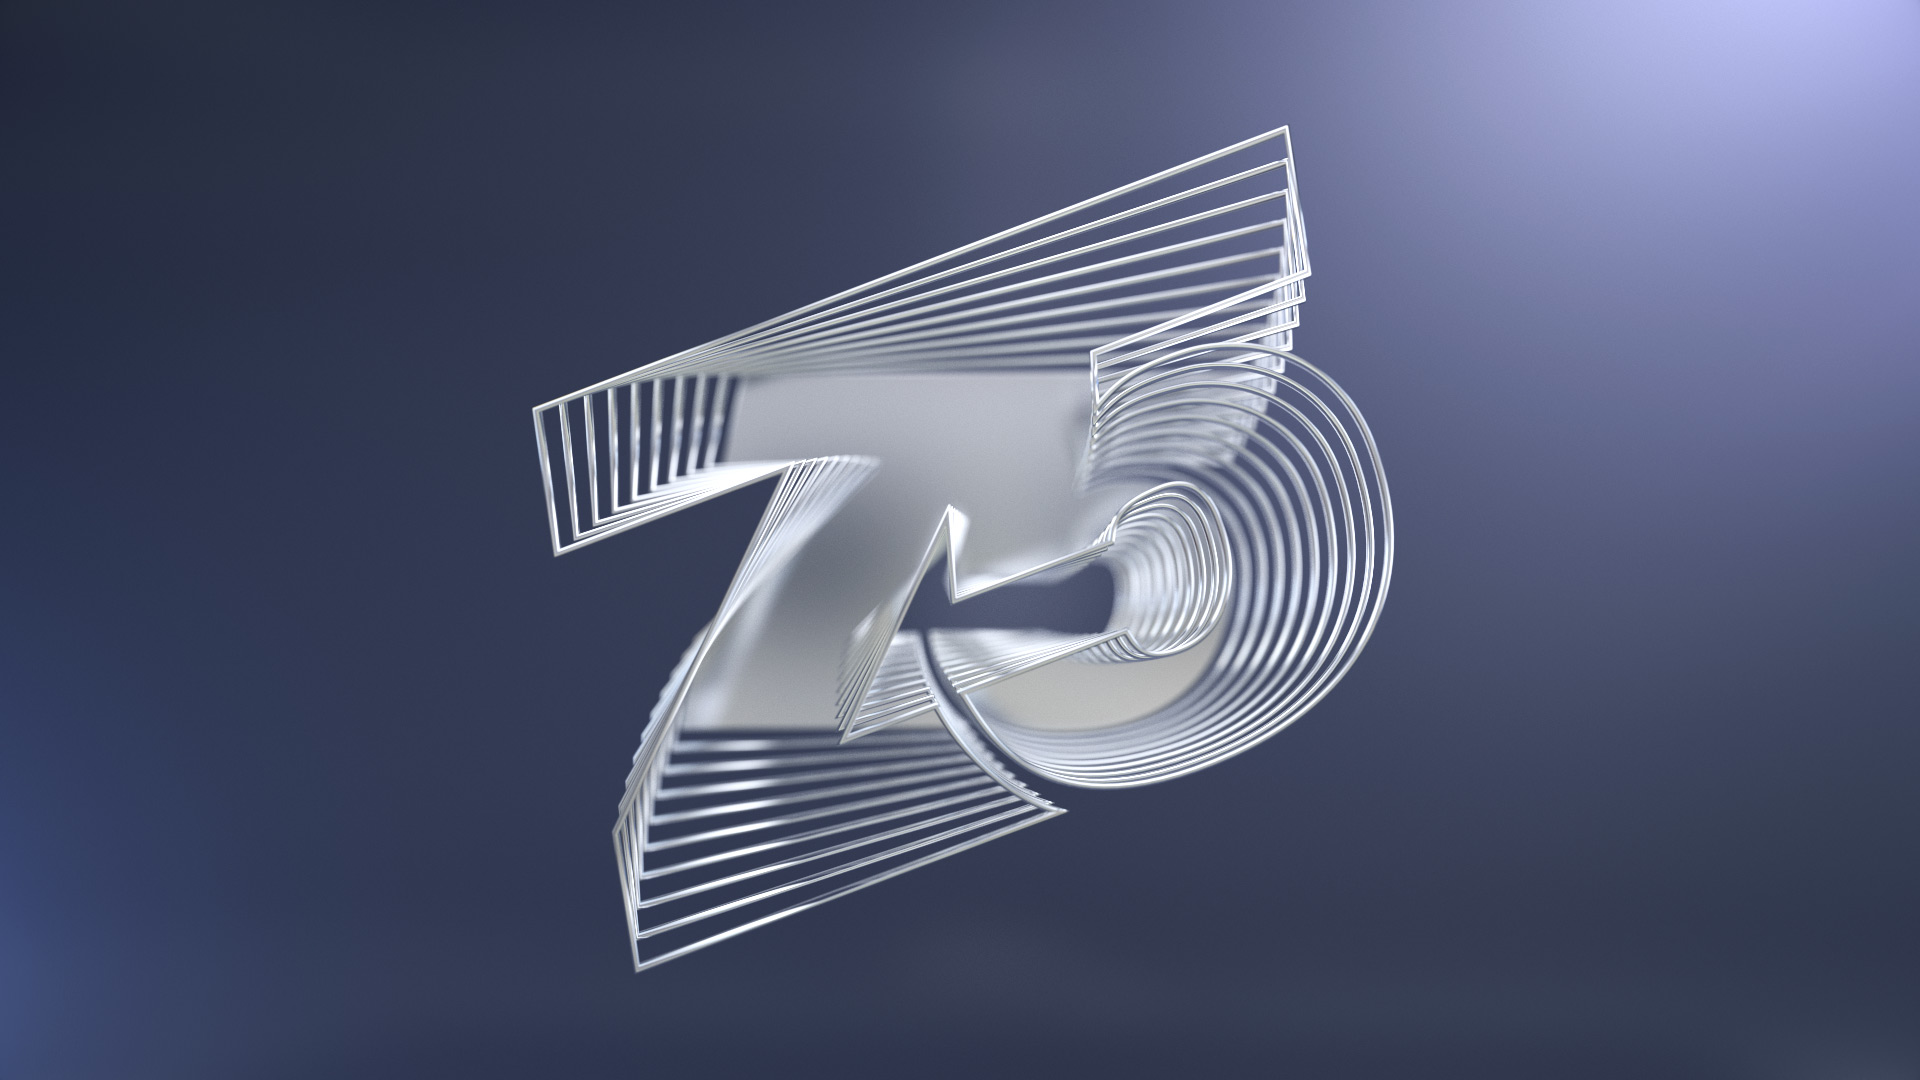 ident-3a